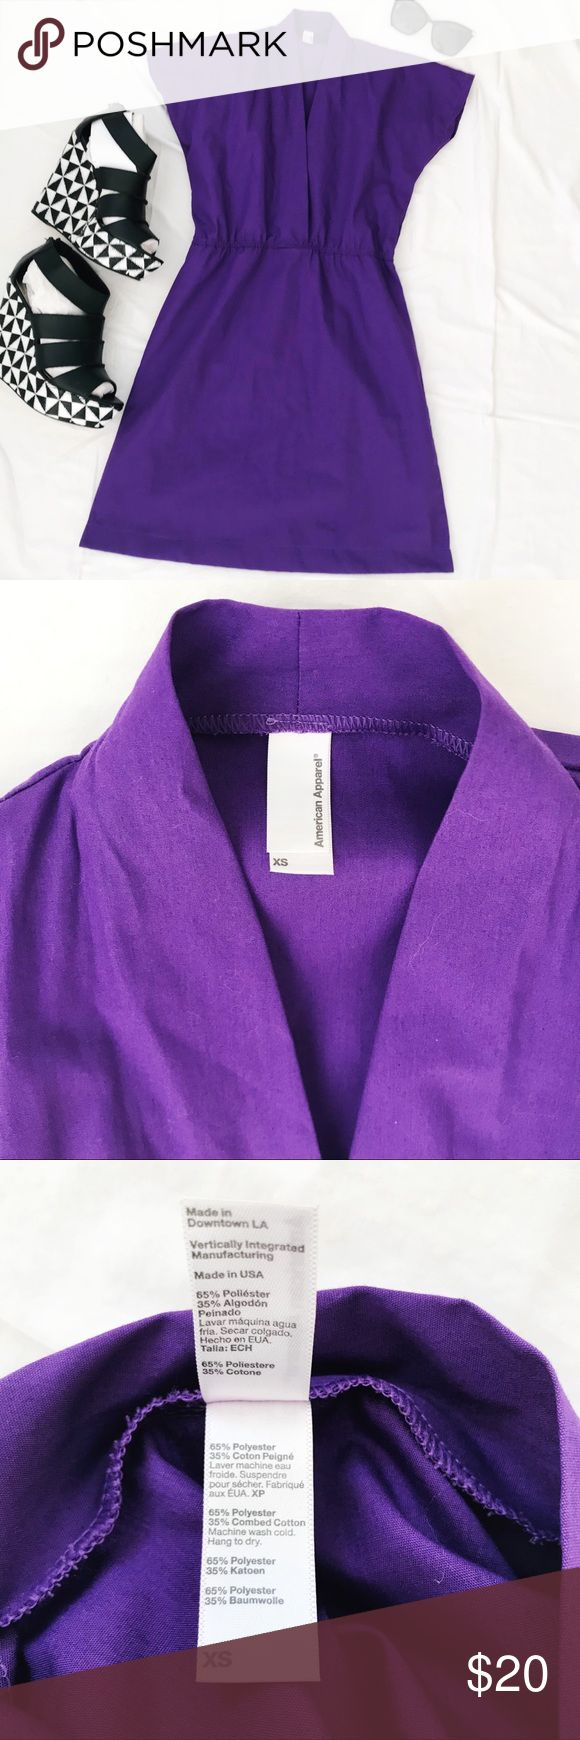 """American Apparel Kimono Dress XS American Apparel Kimono Dress XS - Bright purple color - Kimono style dress - Excellent used condition - 32"""" long from shoulder to bottom of dress American Apparel Dresses"""